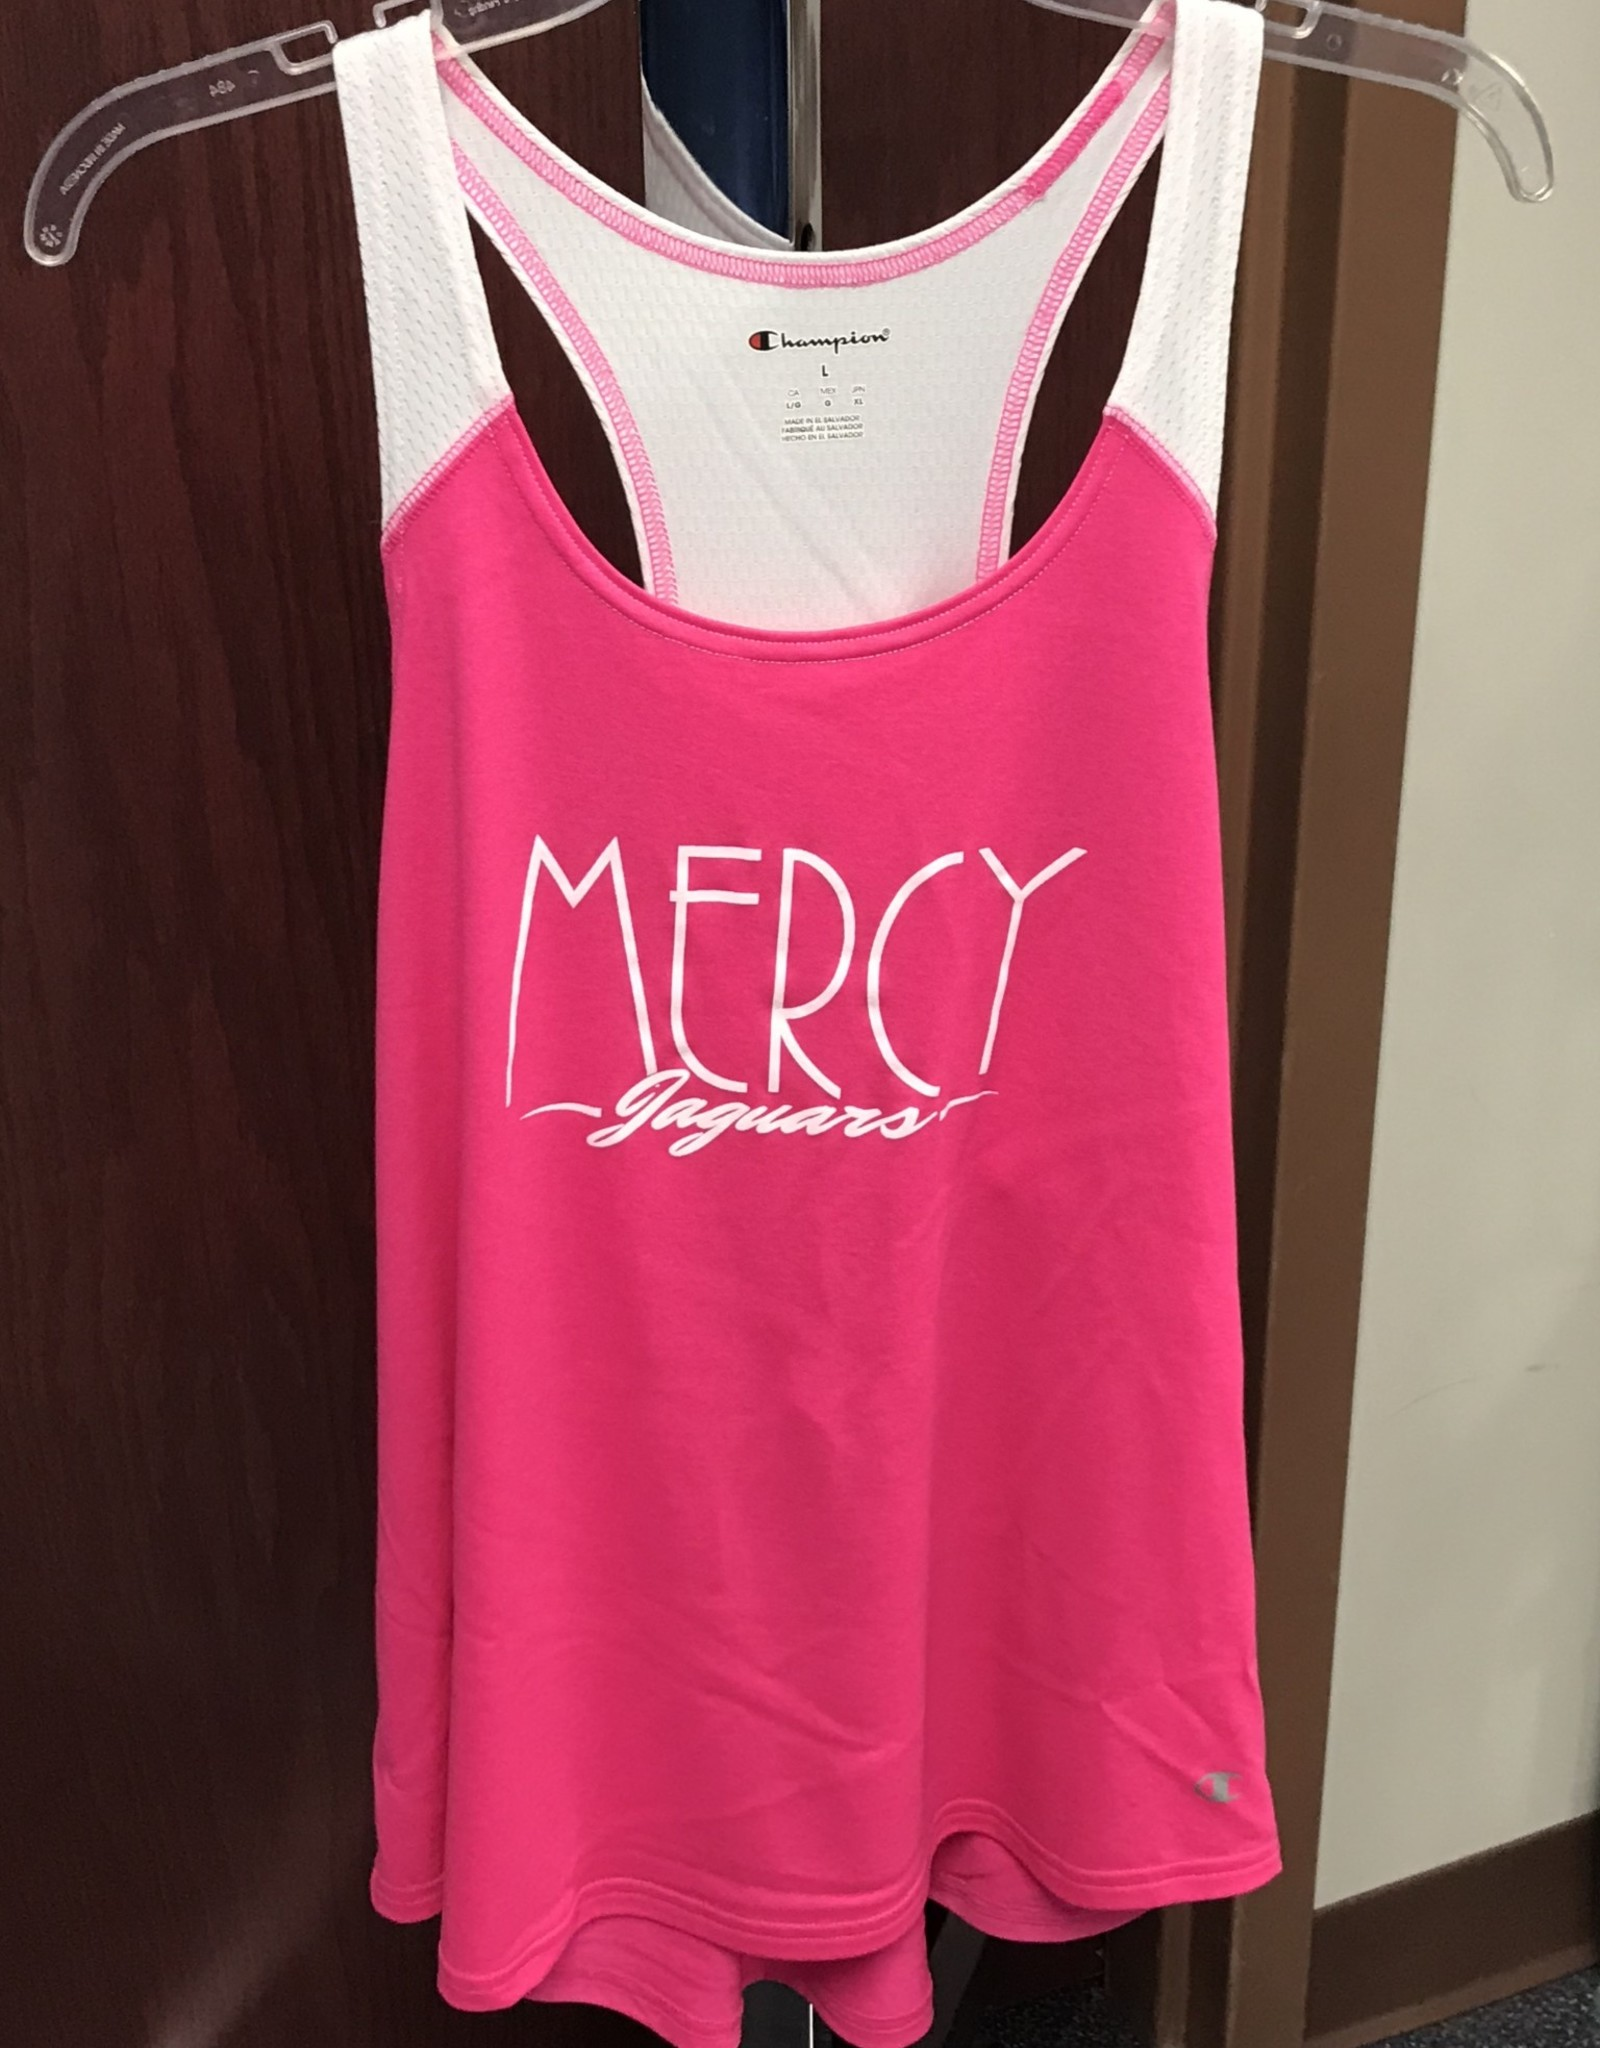 Mercy Jaguars - Pink & White Athletic Tank Top